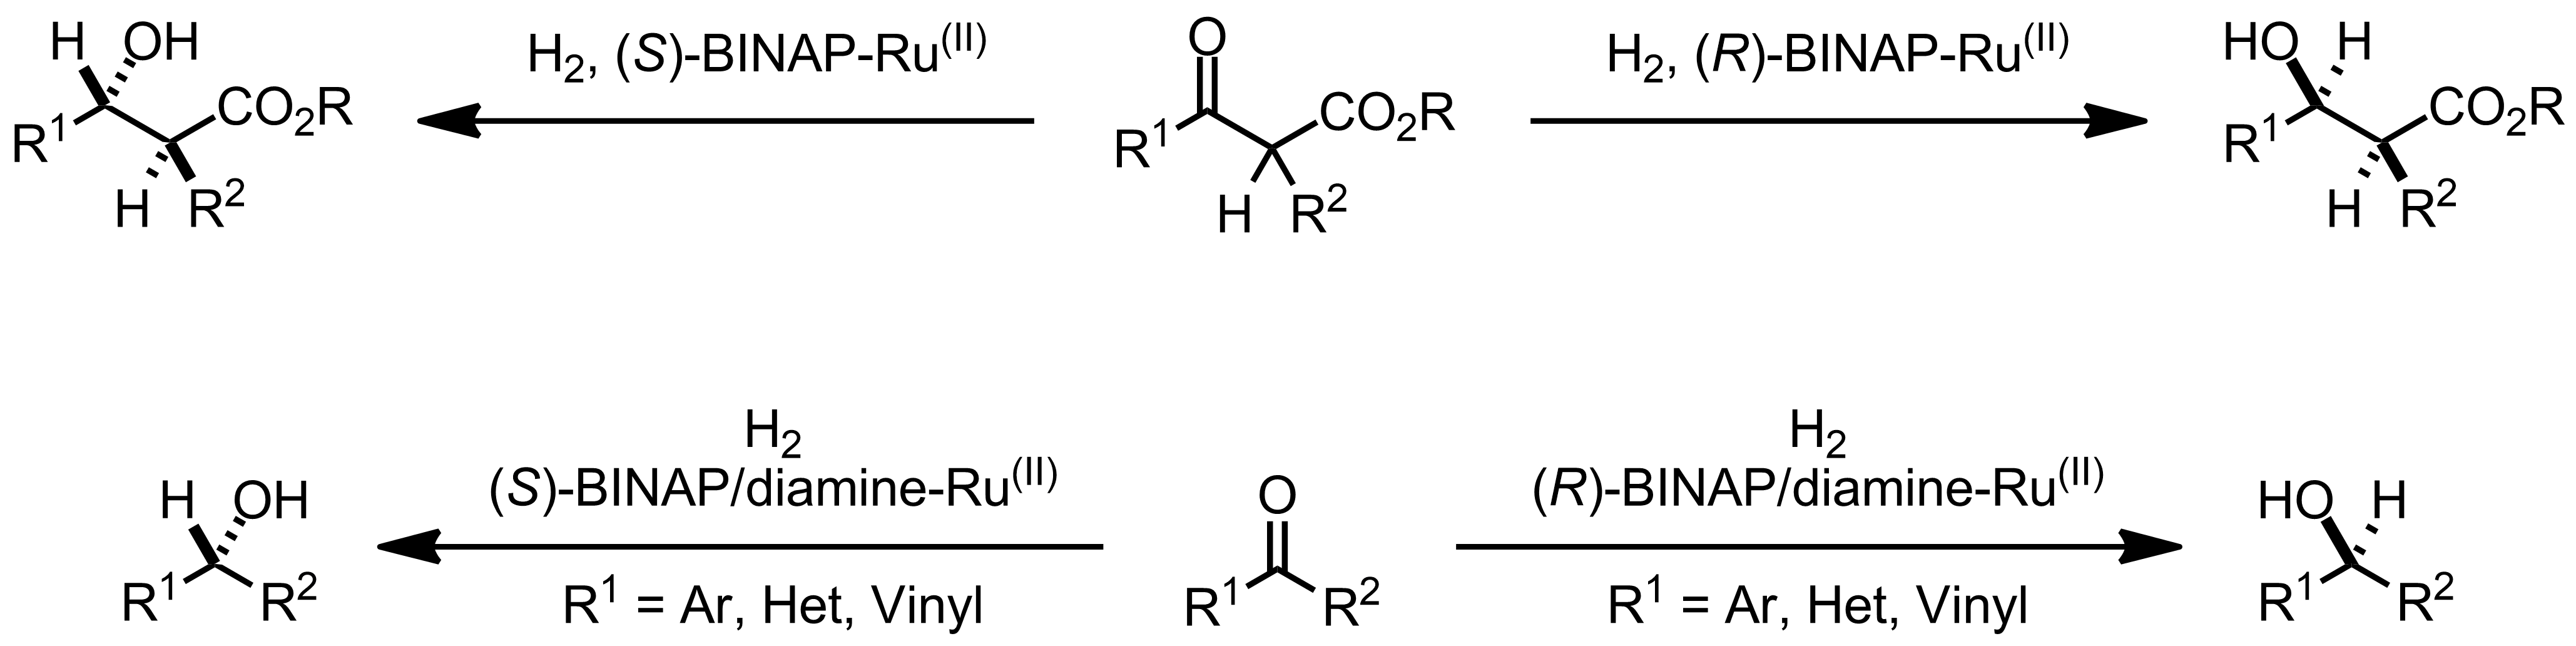 Schematic representation of the Noyori Asymmetric Hydrogenation.